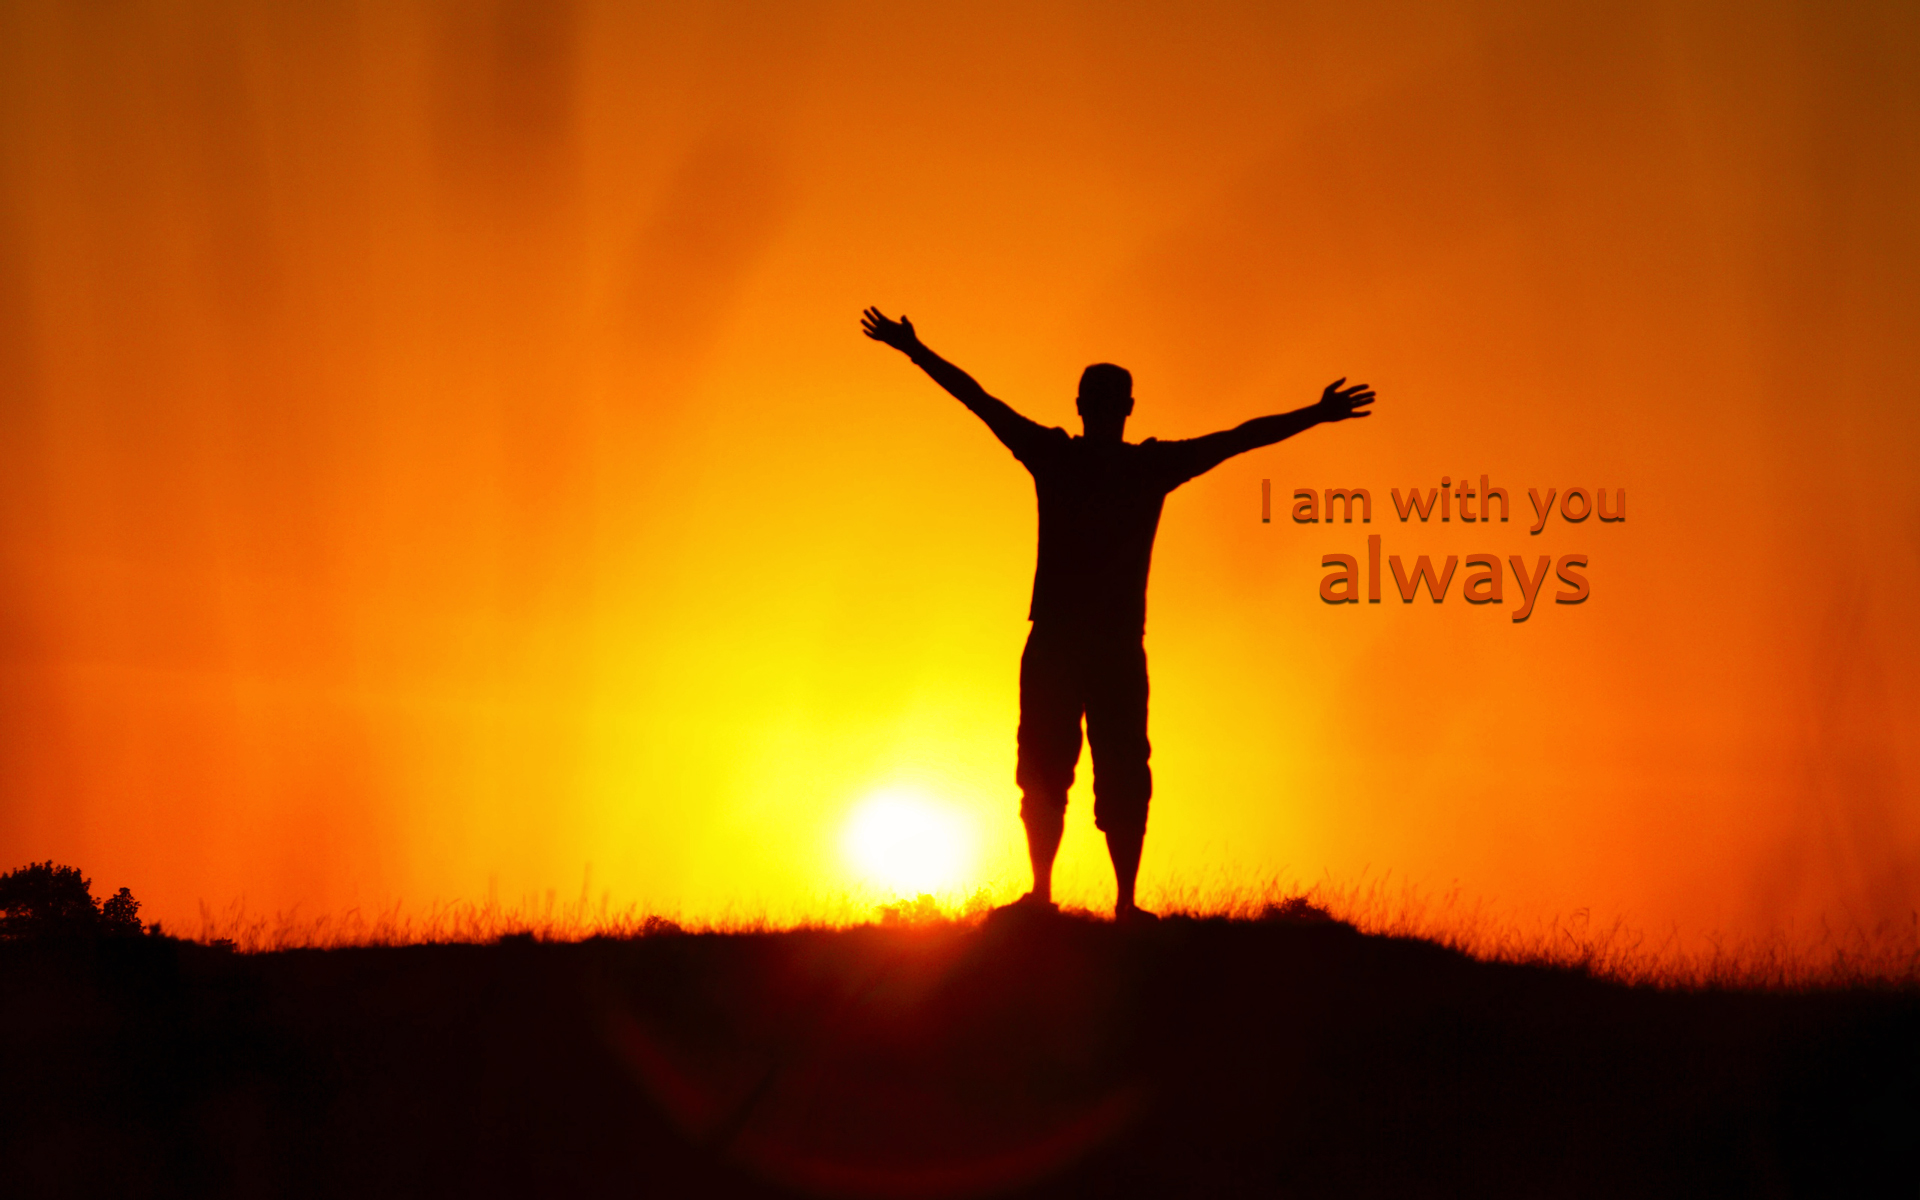 christian wallpapers image wallpaper jesus 1920x1200 1920x1200